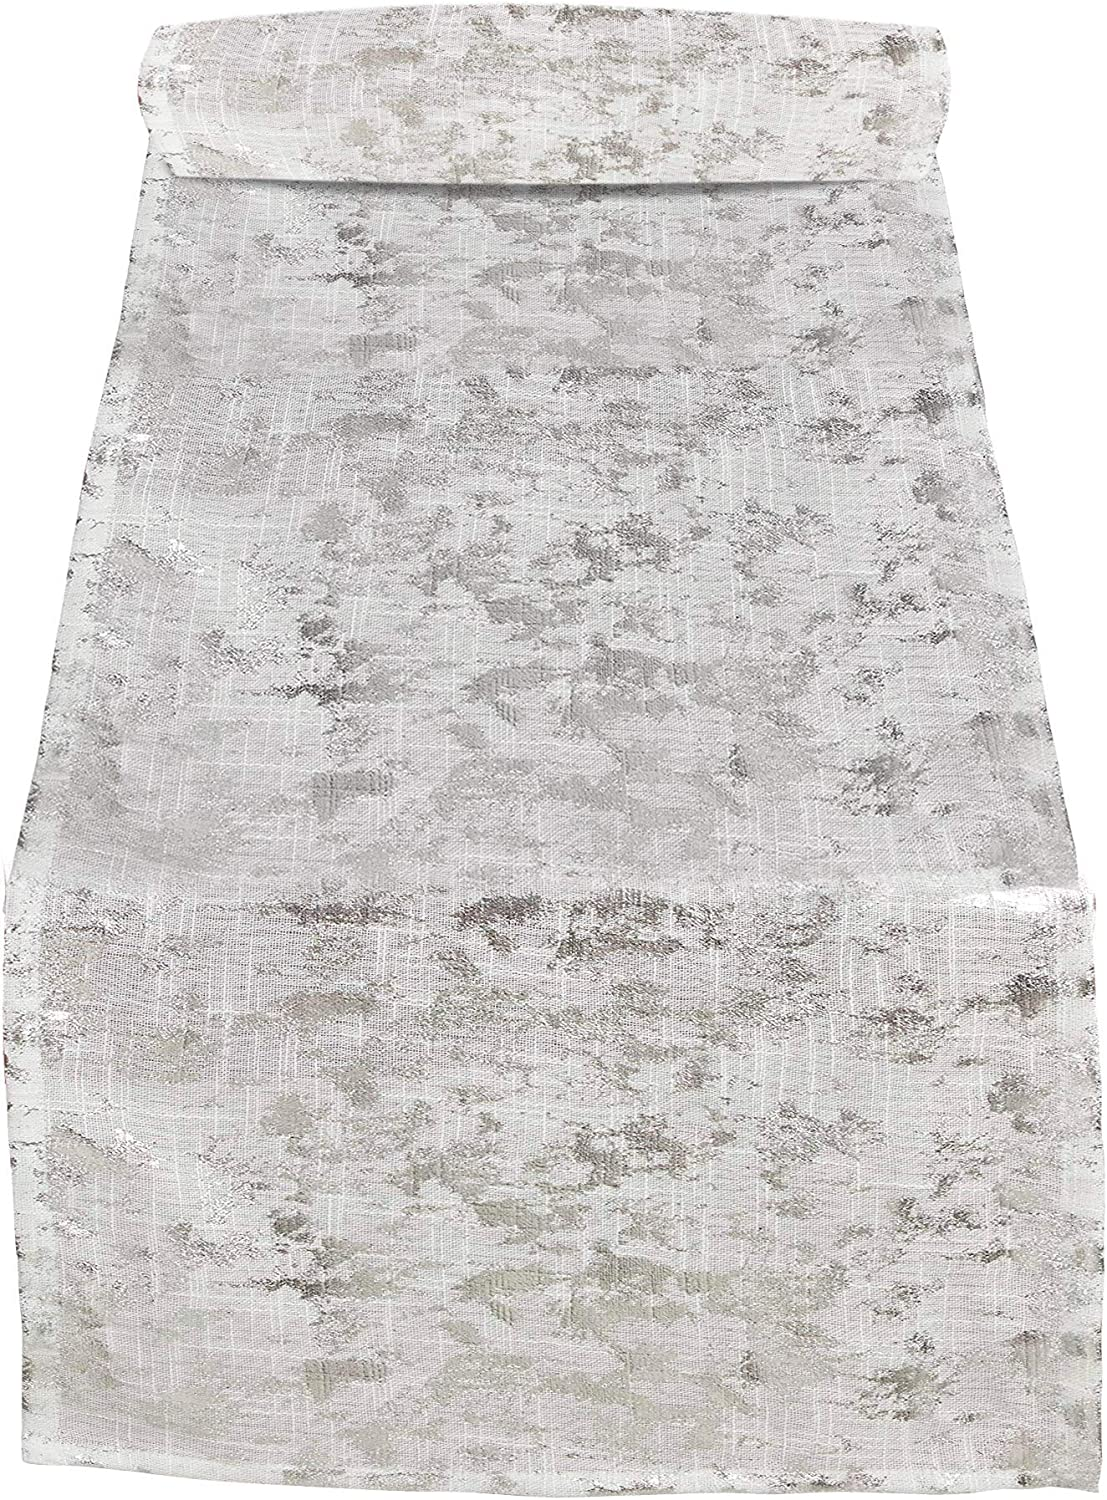 SARO LIFESTYLE Bottega Collection Foil Daily bargain sale Design Runner Outstanding Table Print